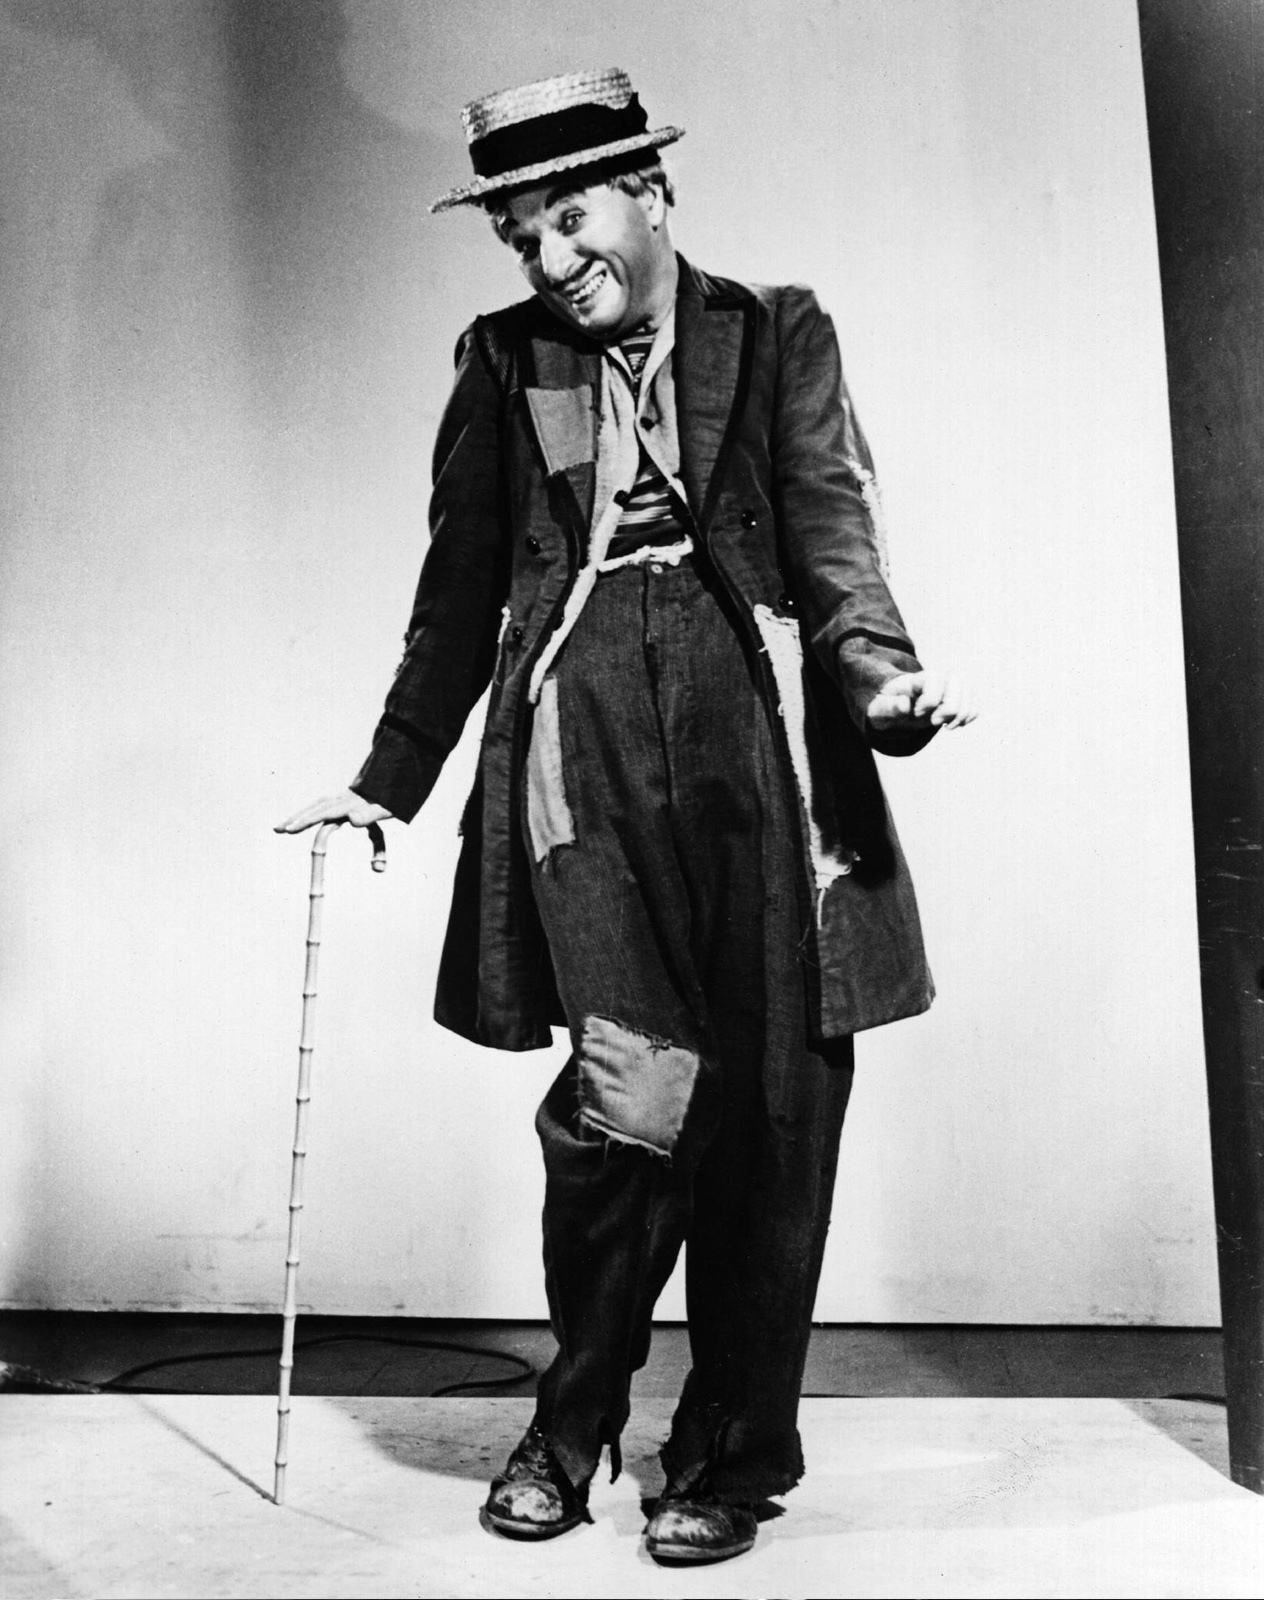 1000+ images about CHARLIE CHAPLIN on Pinterest | Charles ...